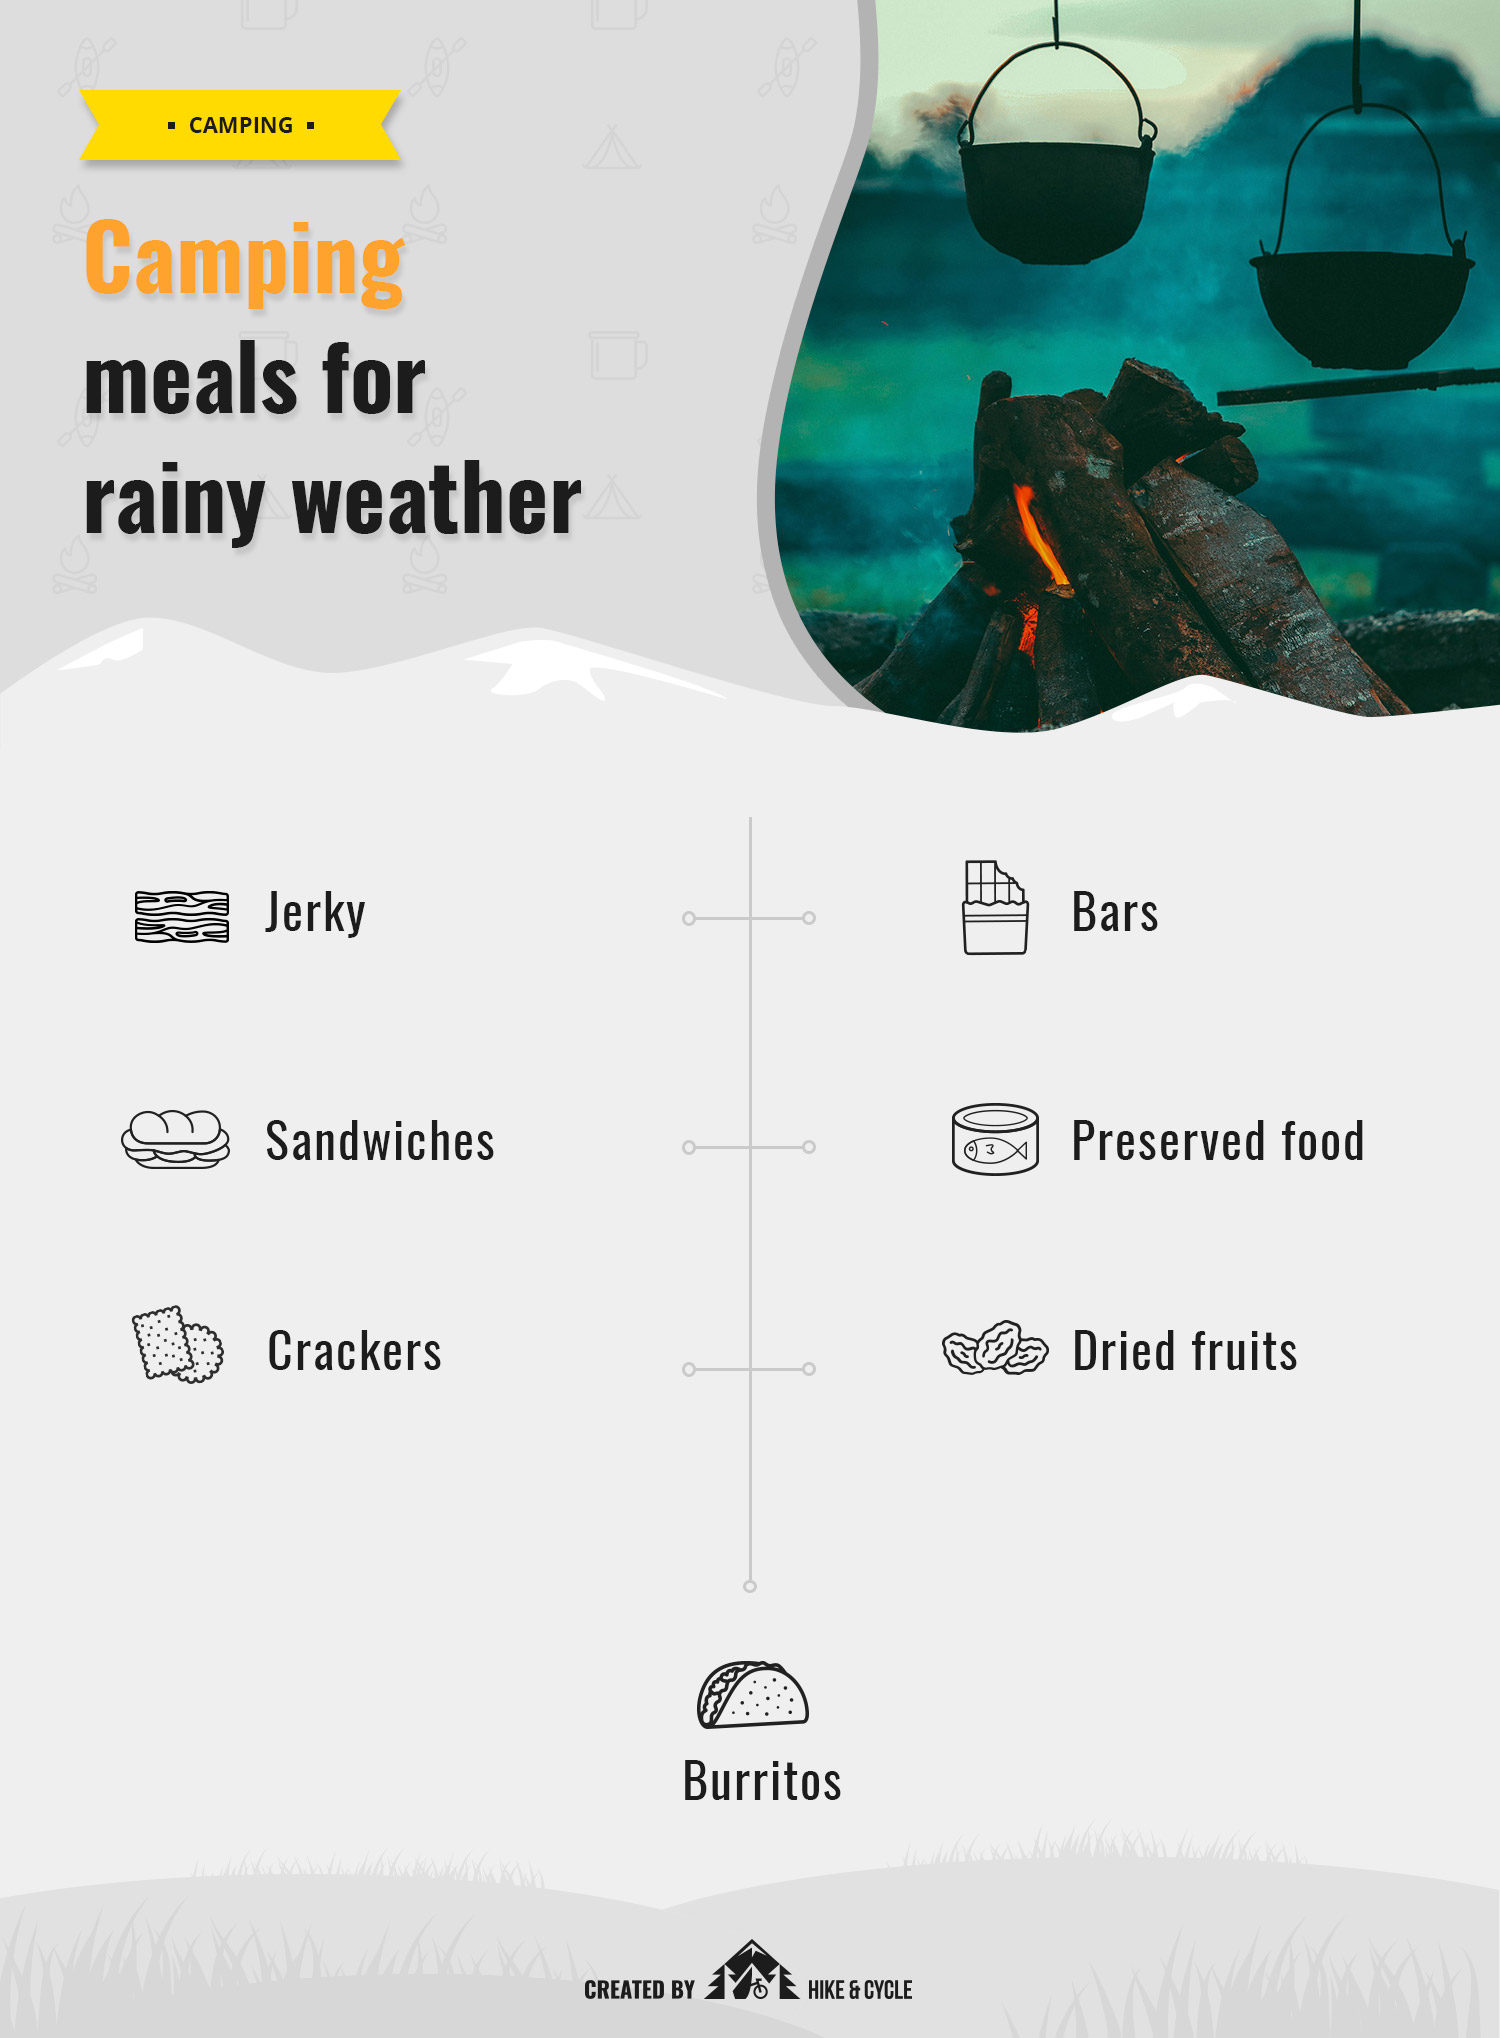 Camping meals for rainy weather